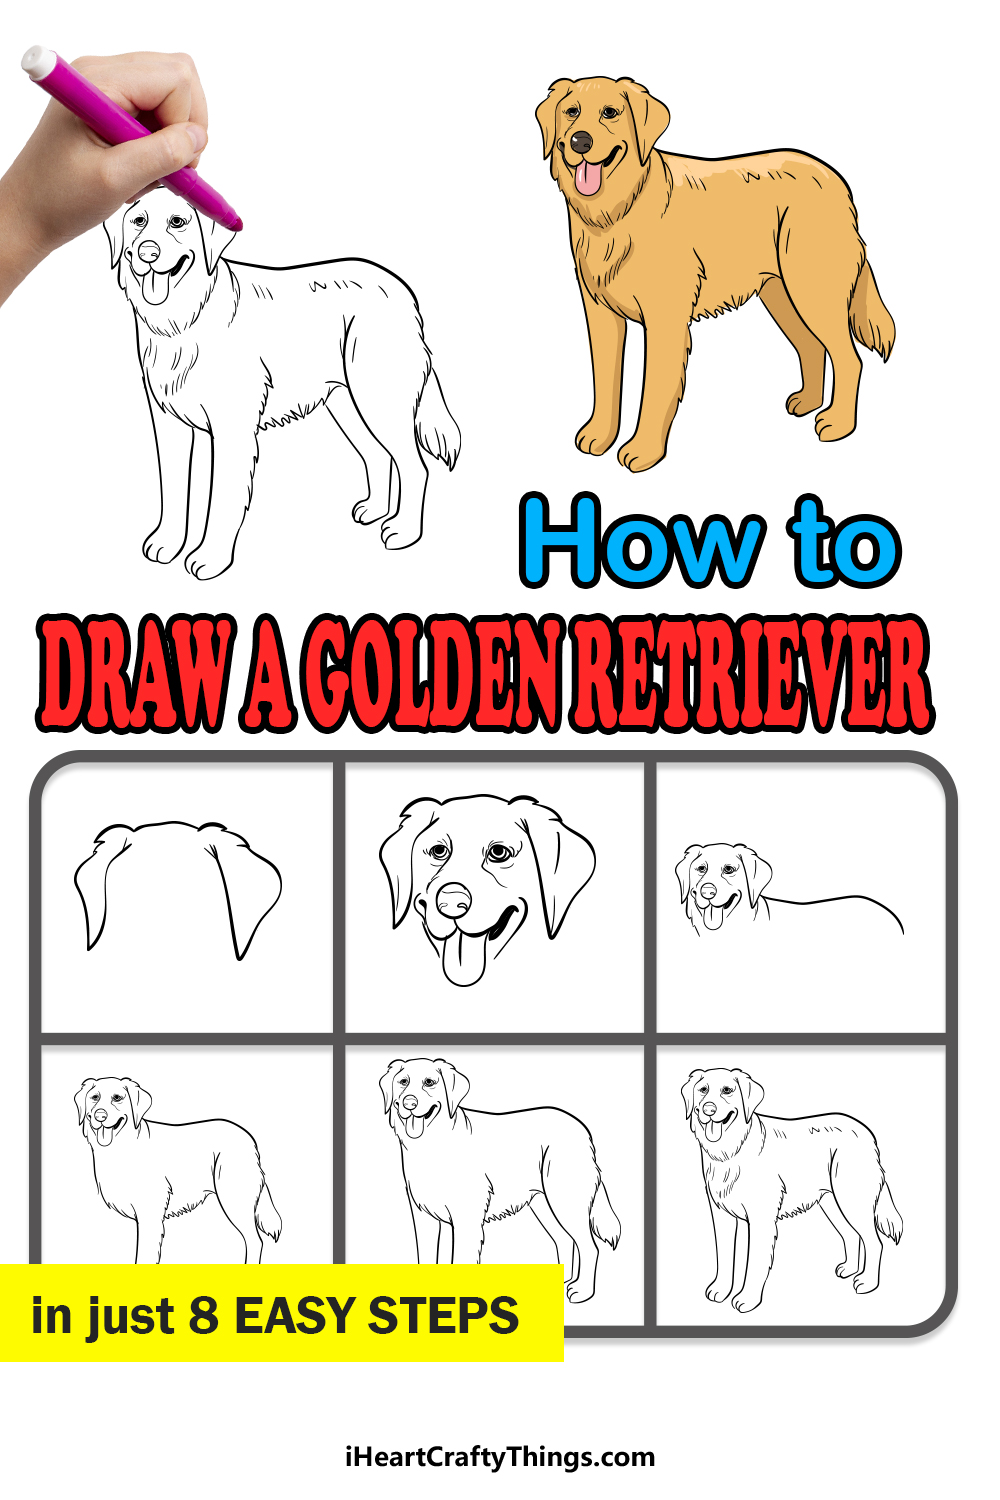 how to draw a golden retriever in 8 easy steps